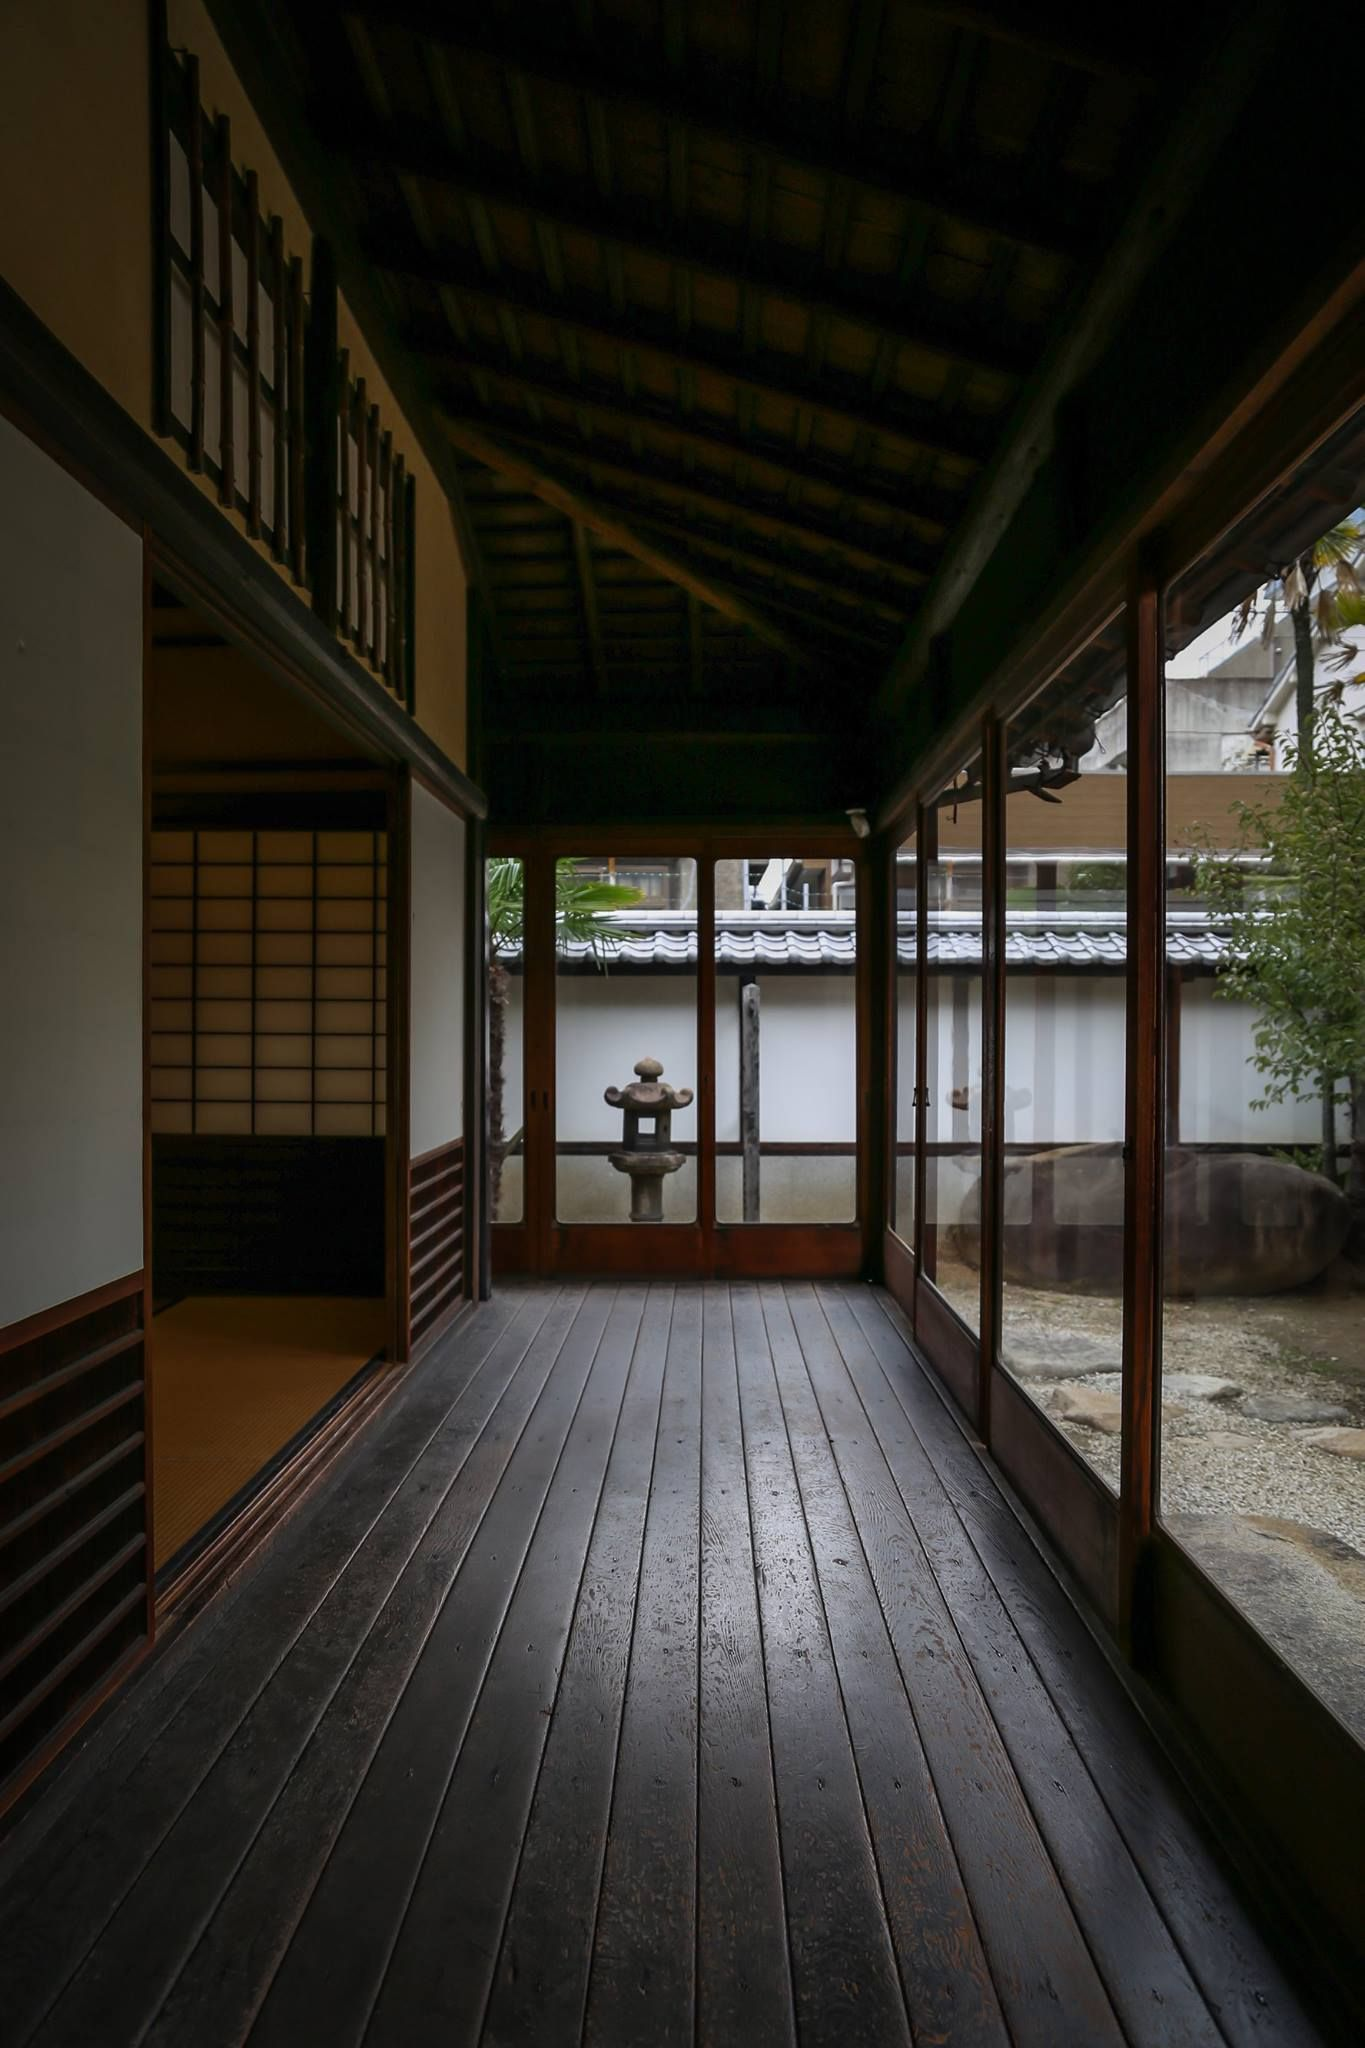 Pin by tom naute on interior design pinterest japanese house pin by tom naute on interior design pinterest japanese house interior architecture and room decor malvernweather Choice Image